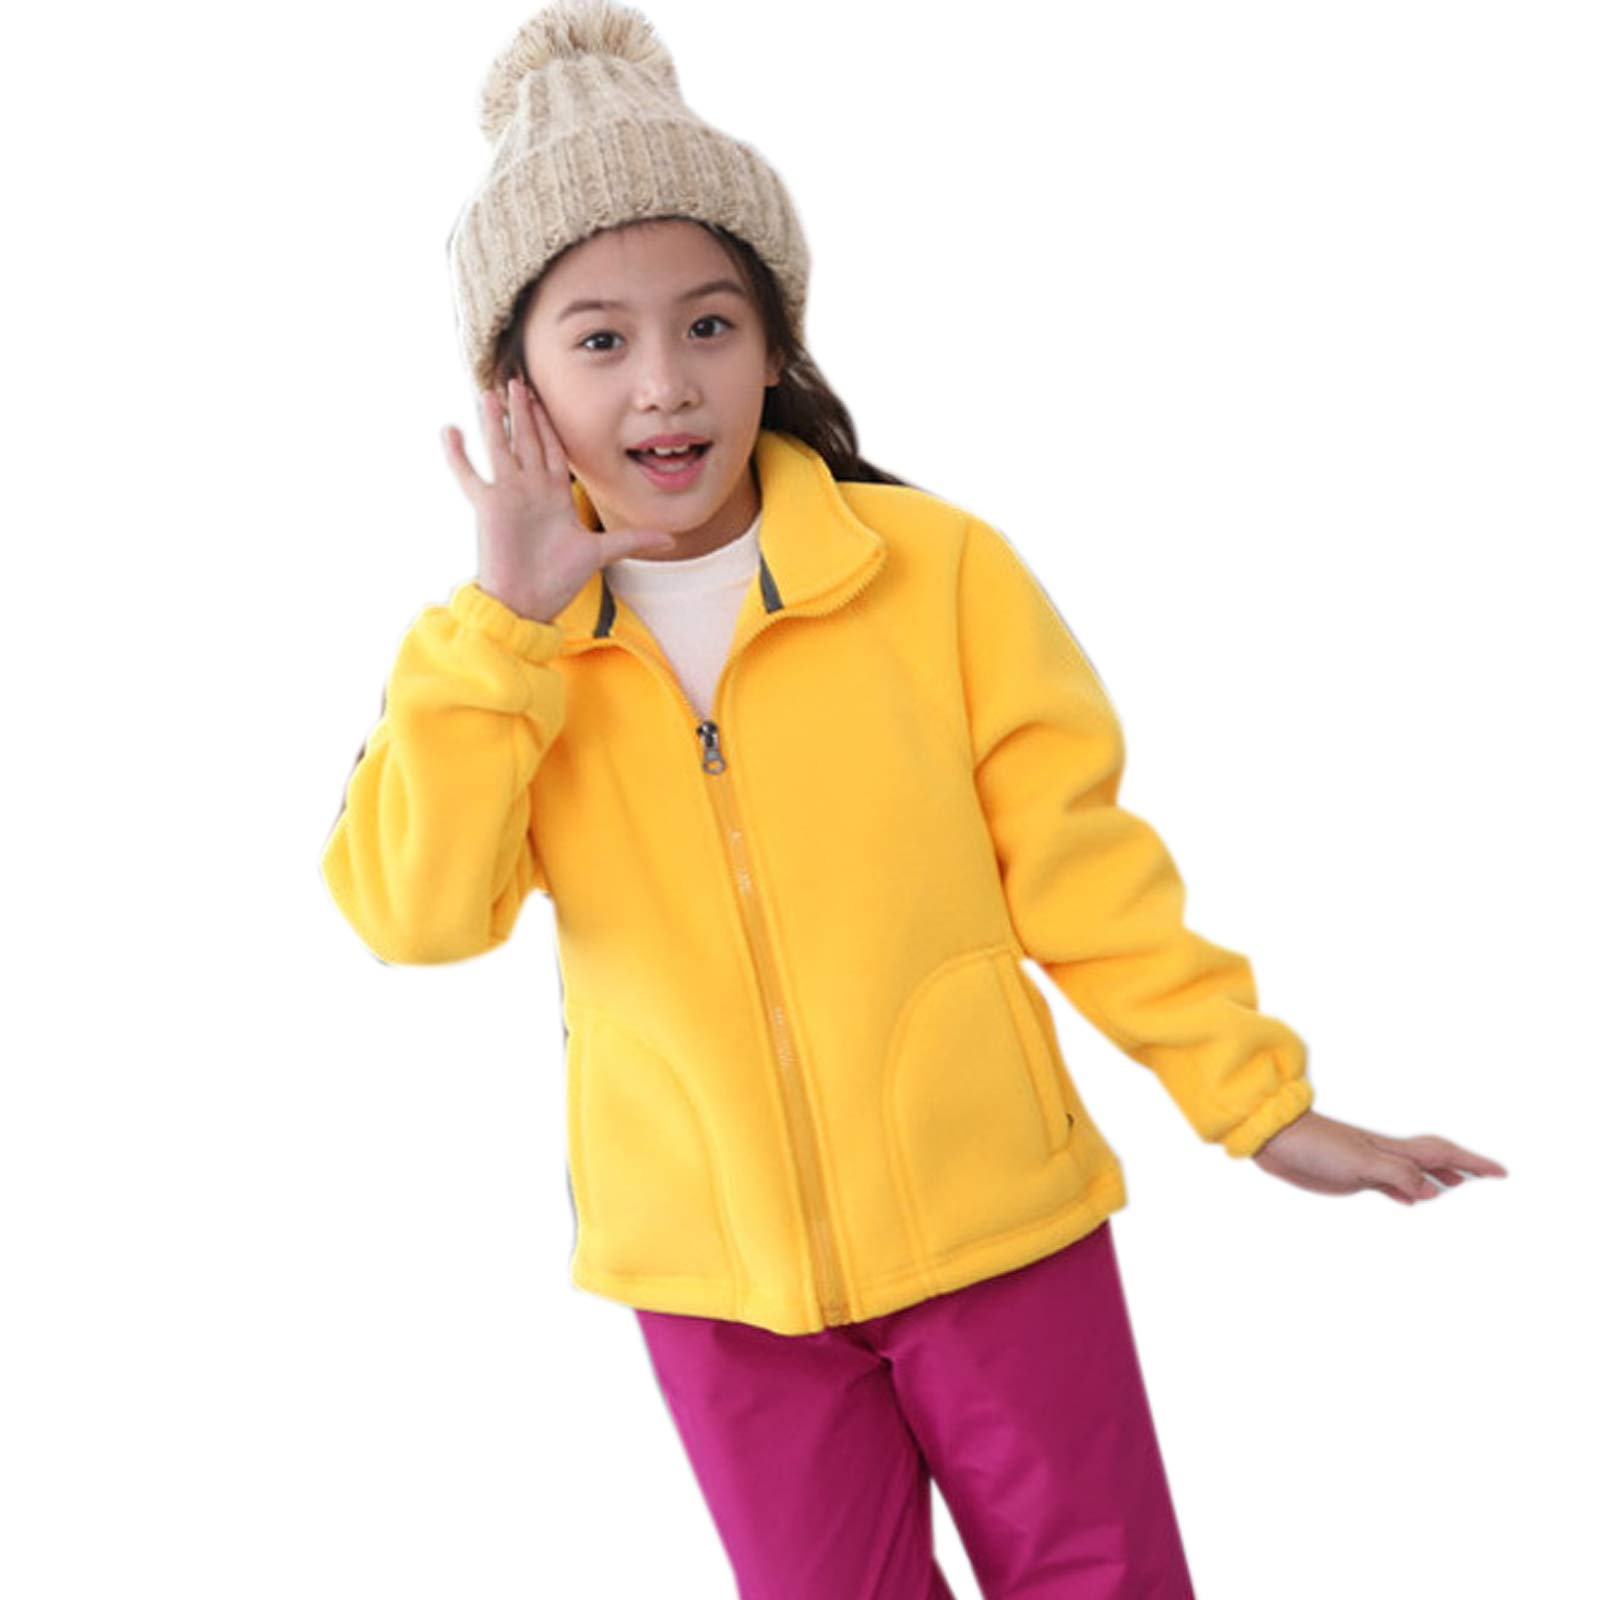 Elonglin Kids Fleece Jacket Full Zip Stand Collar Girls Sportwear Top Outwear Yellow4 Bust 31.8''(Asie XXXS) by Elonglin